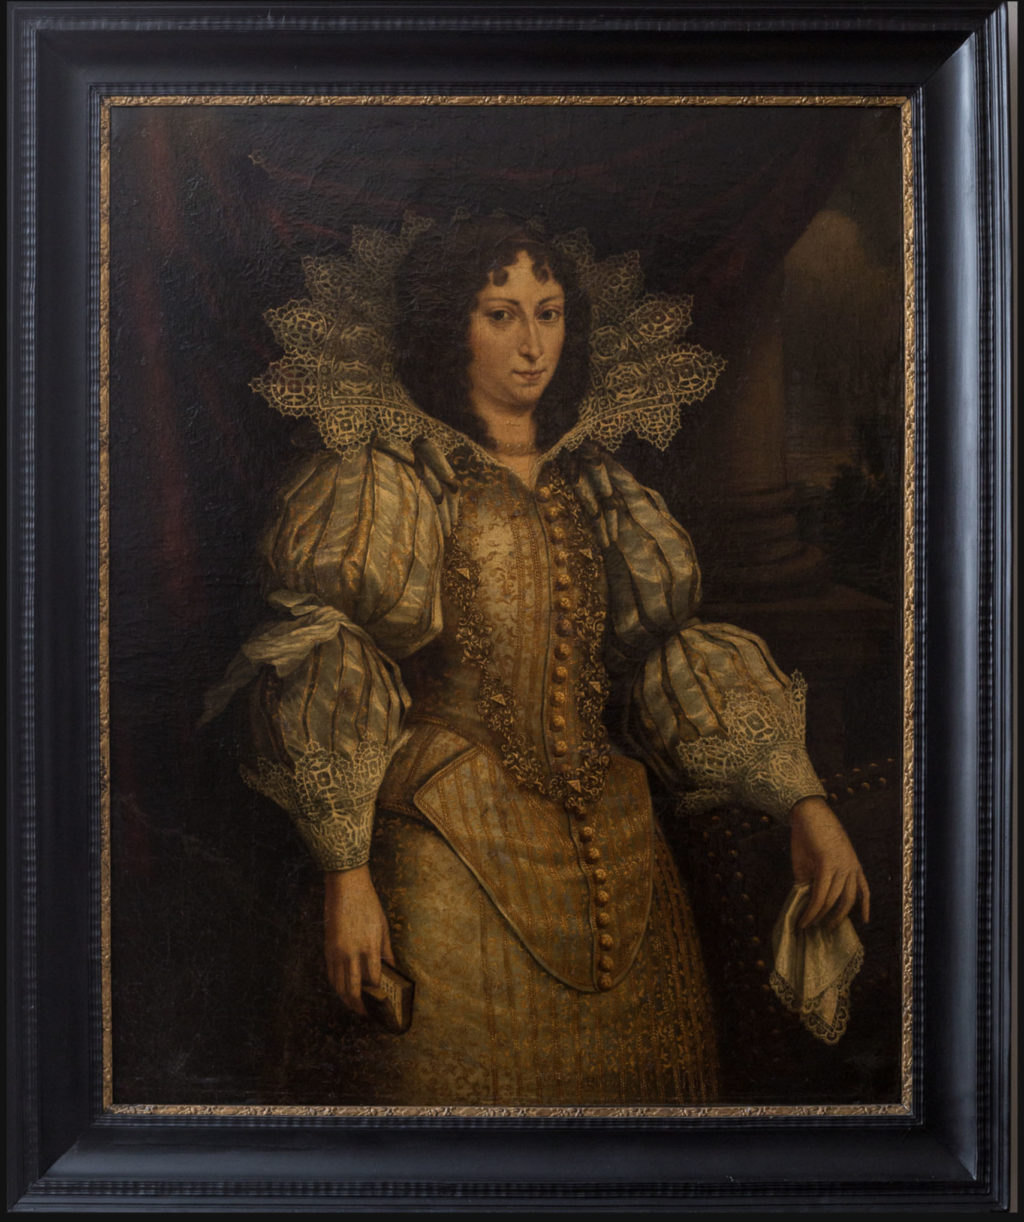 Sfumato Portrait of a Noblewoman in the Renaissance Style